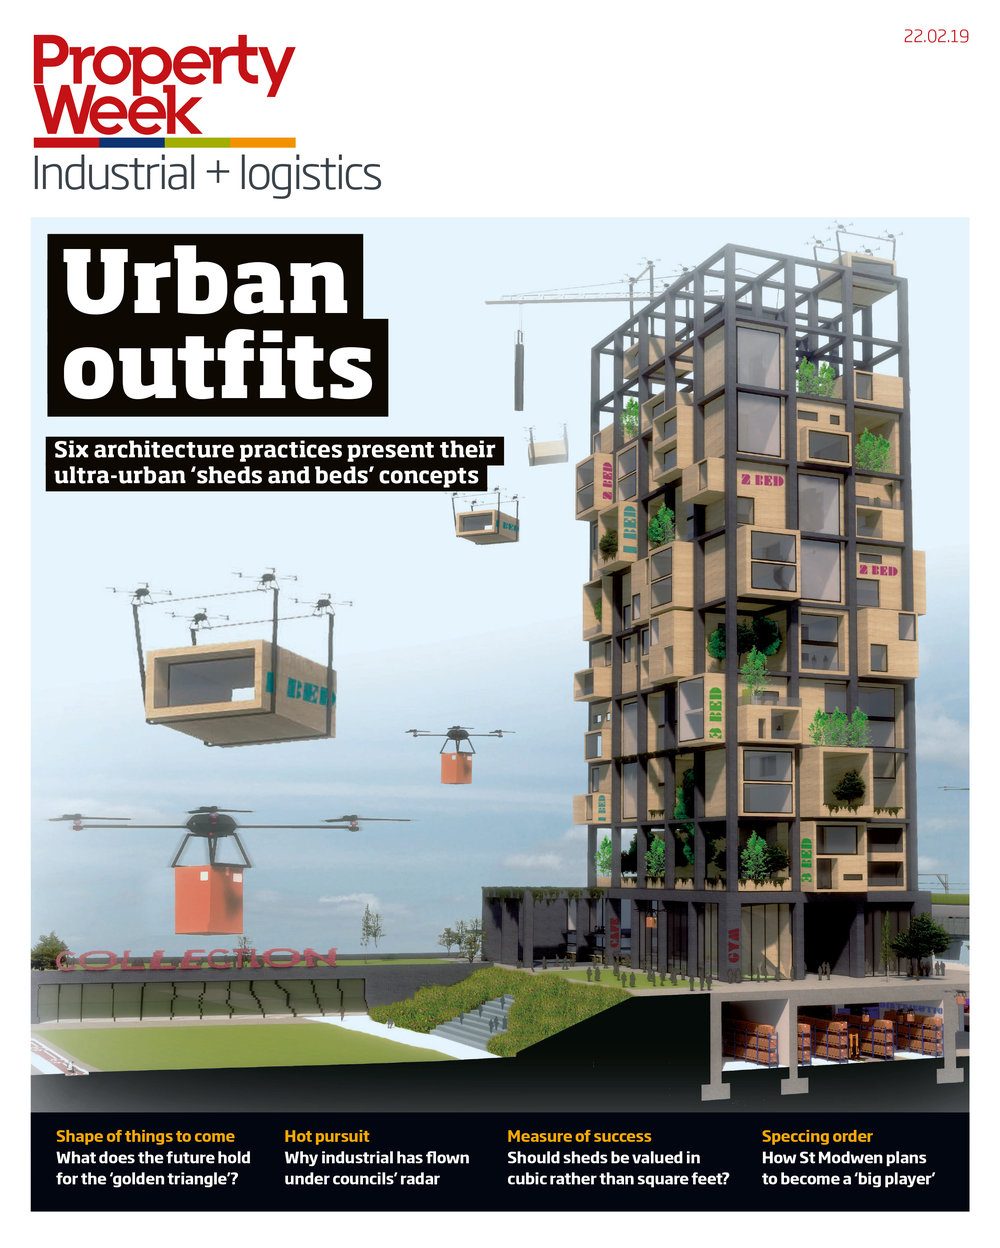 001_PWSHEDS_22February19_Cover.jpg